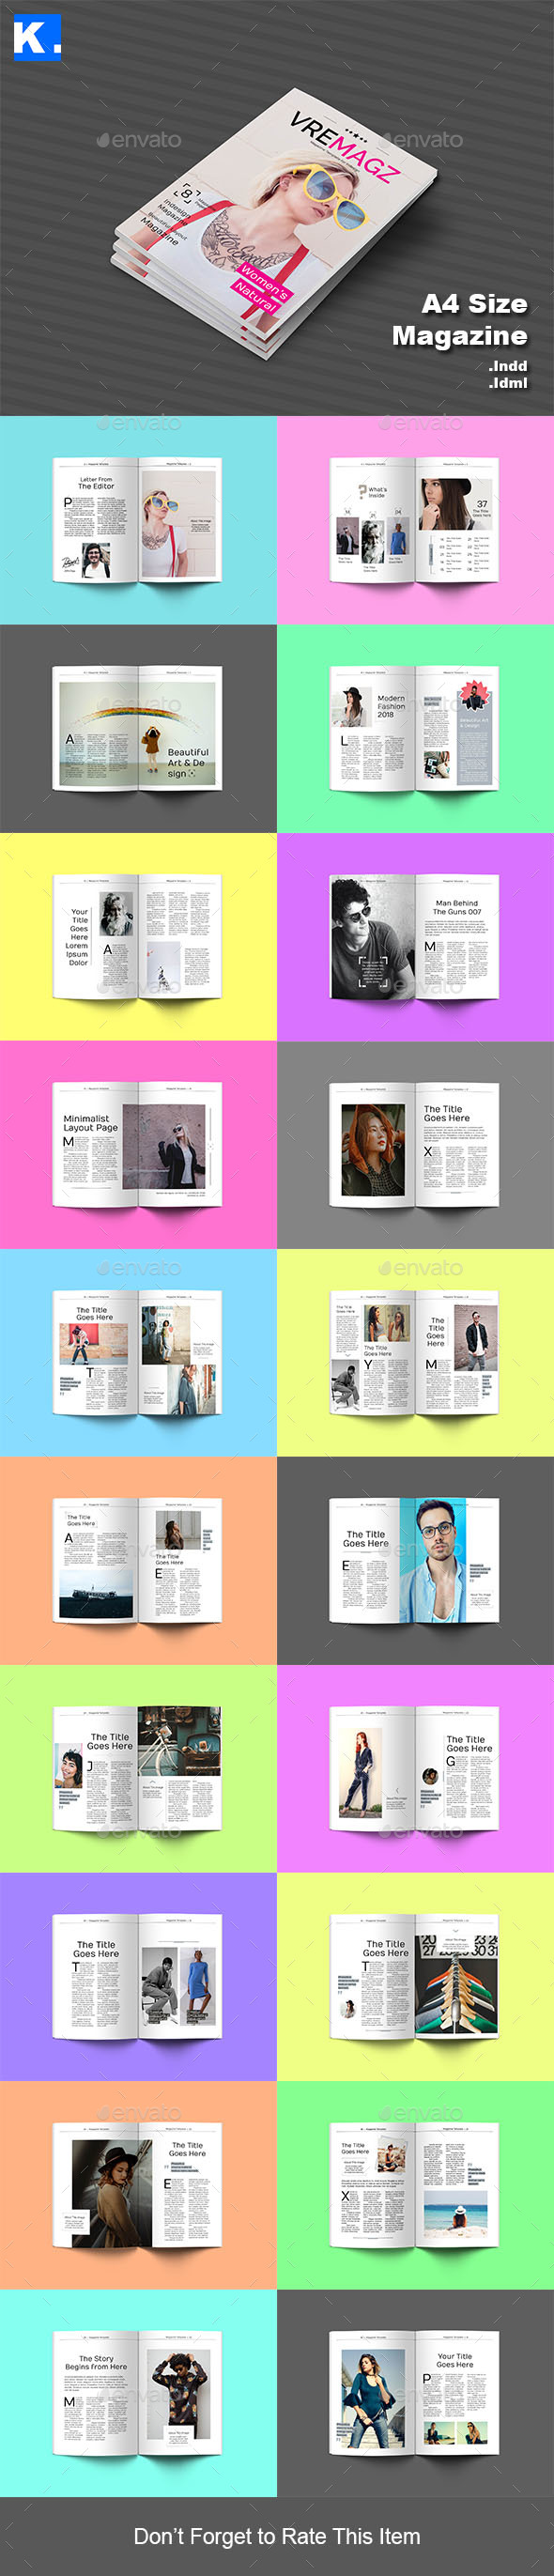 Indesign Magazine Template 9 by kootoot | GraphicRiver